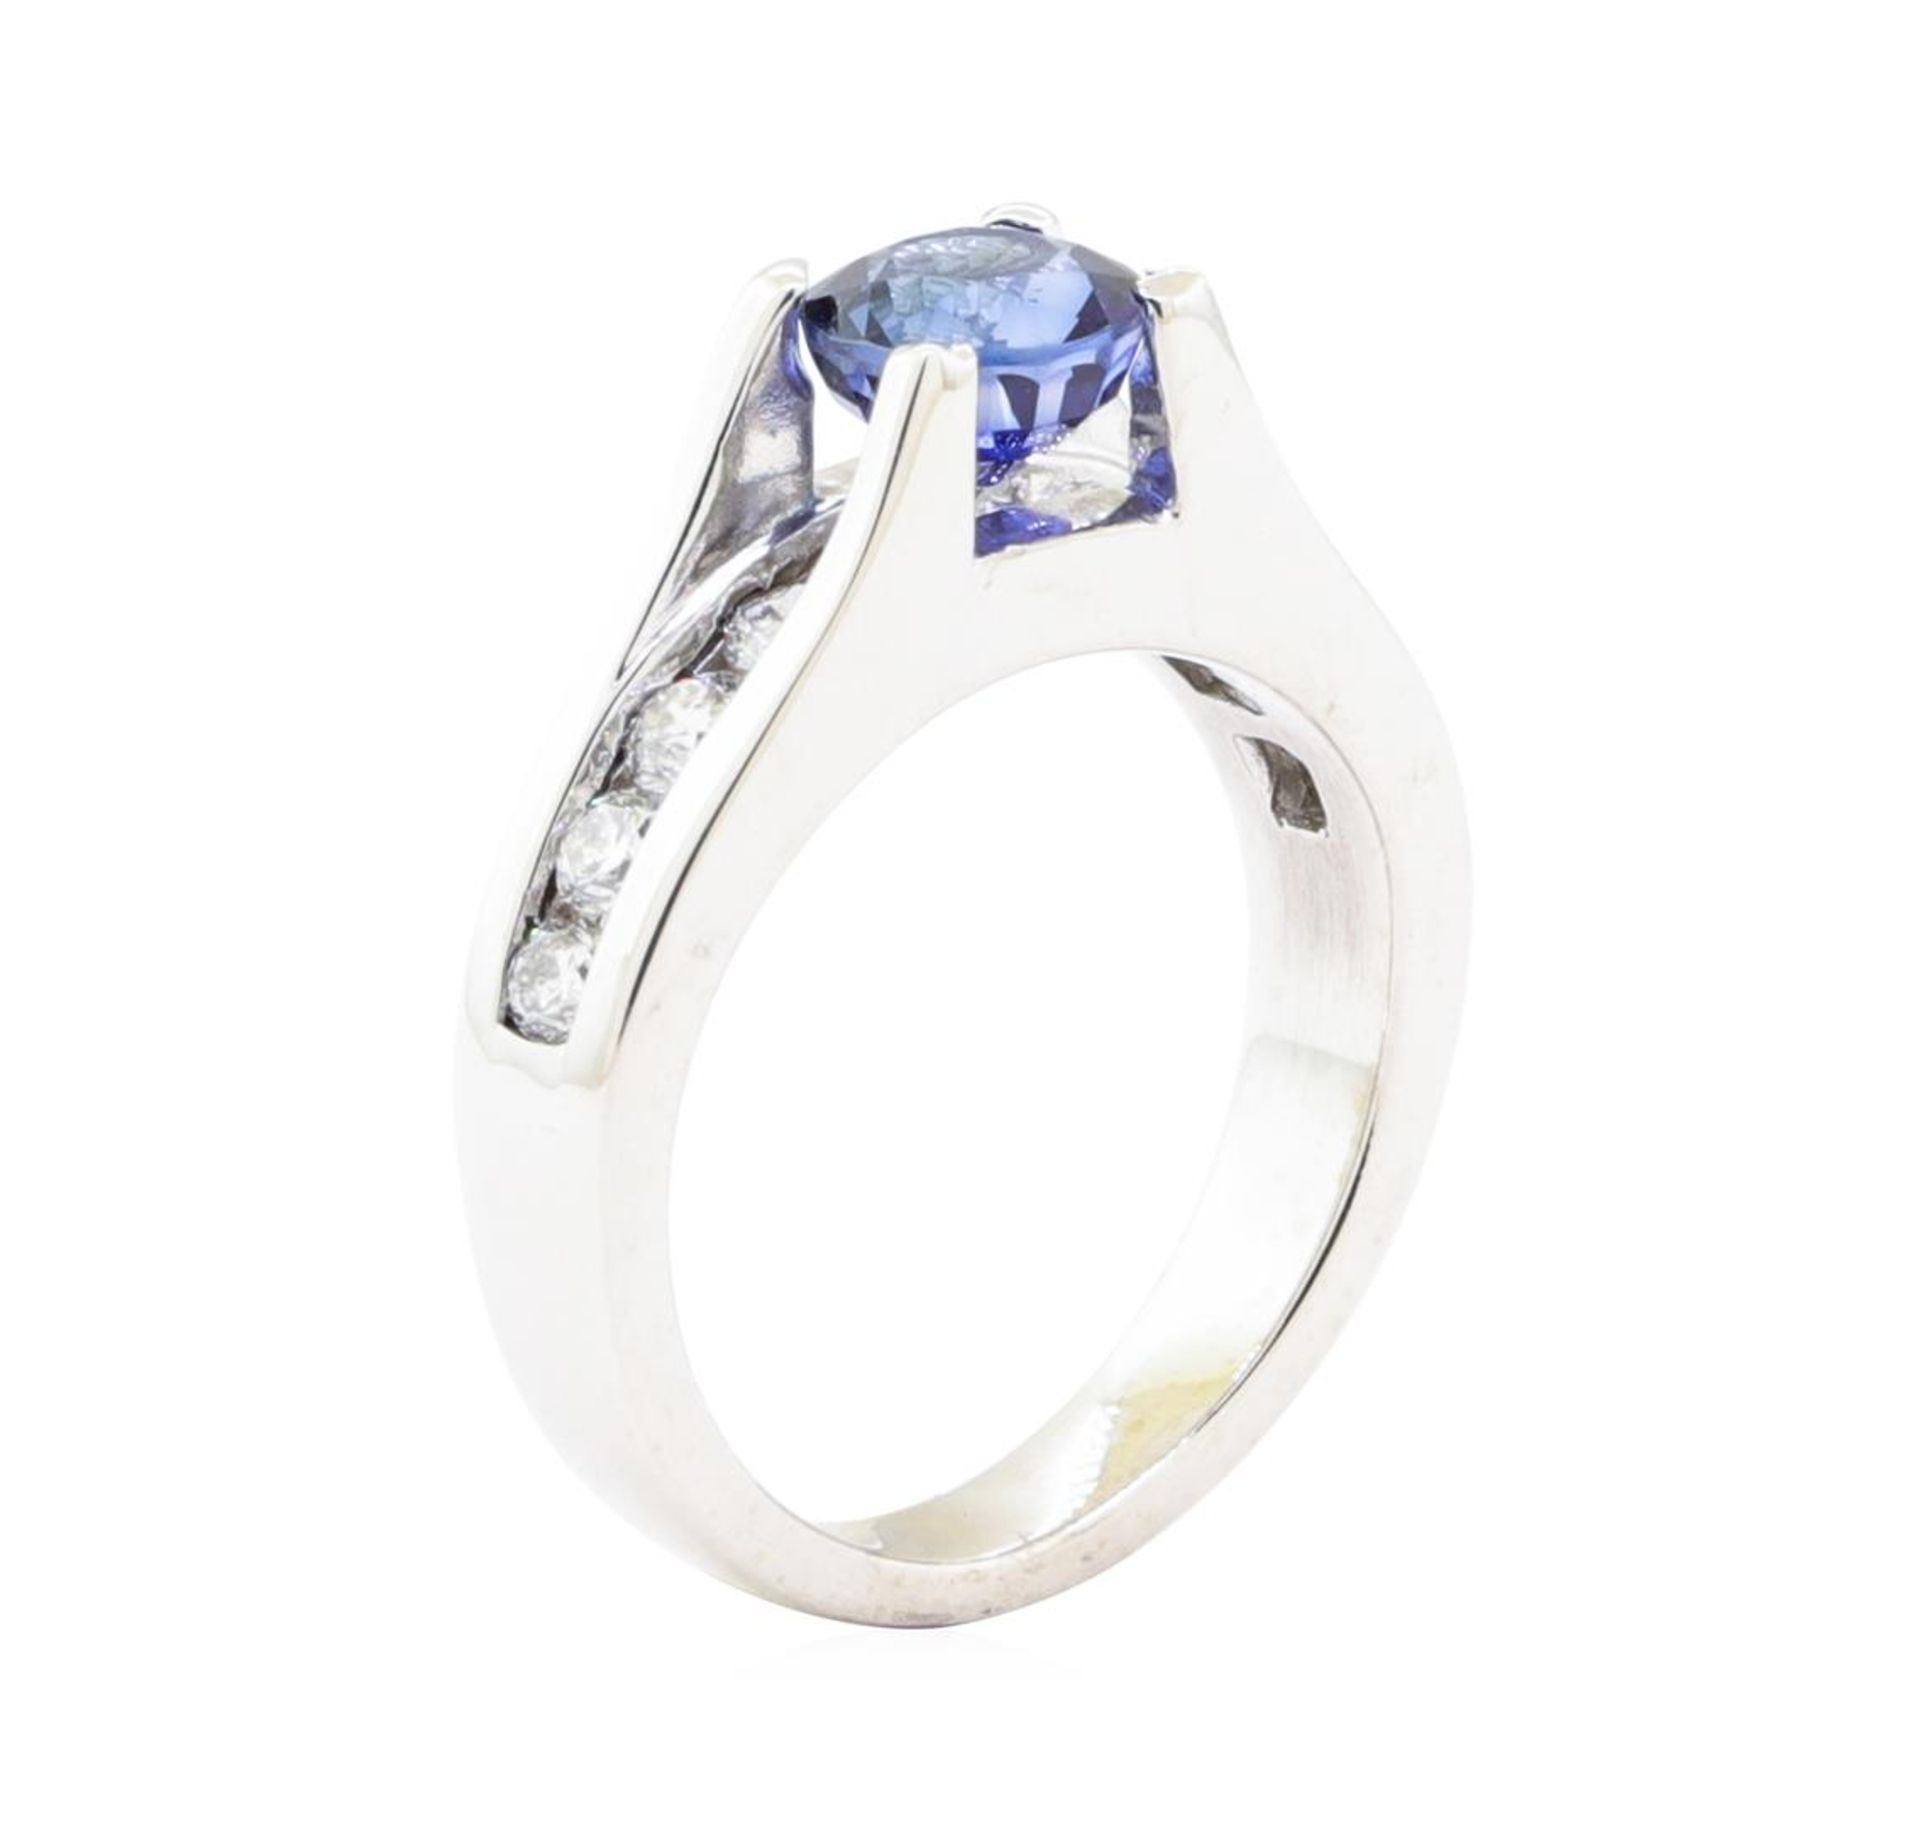 2.05ctw Sapphire and Diamond Ring - 14KT White Gold - Image 4 of 4